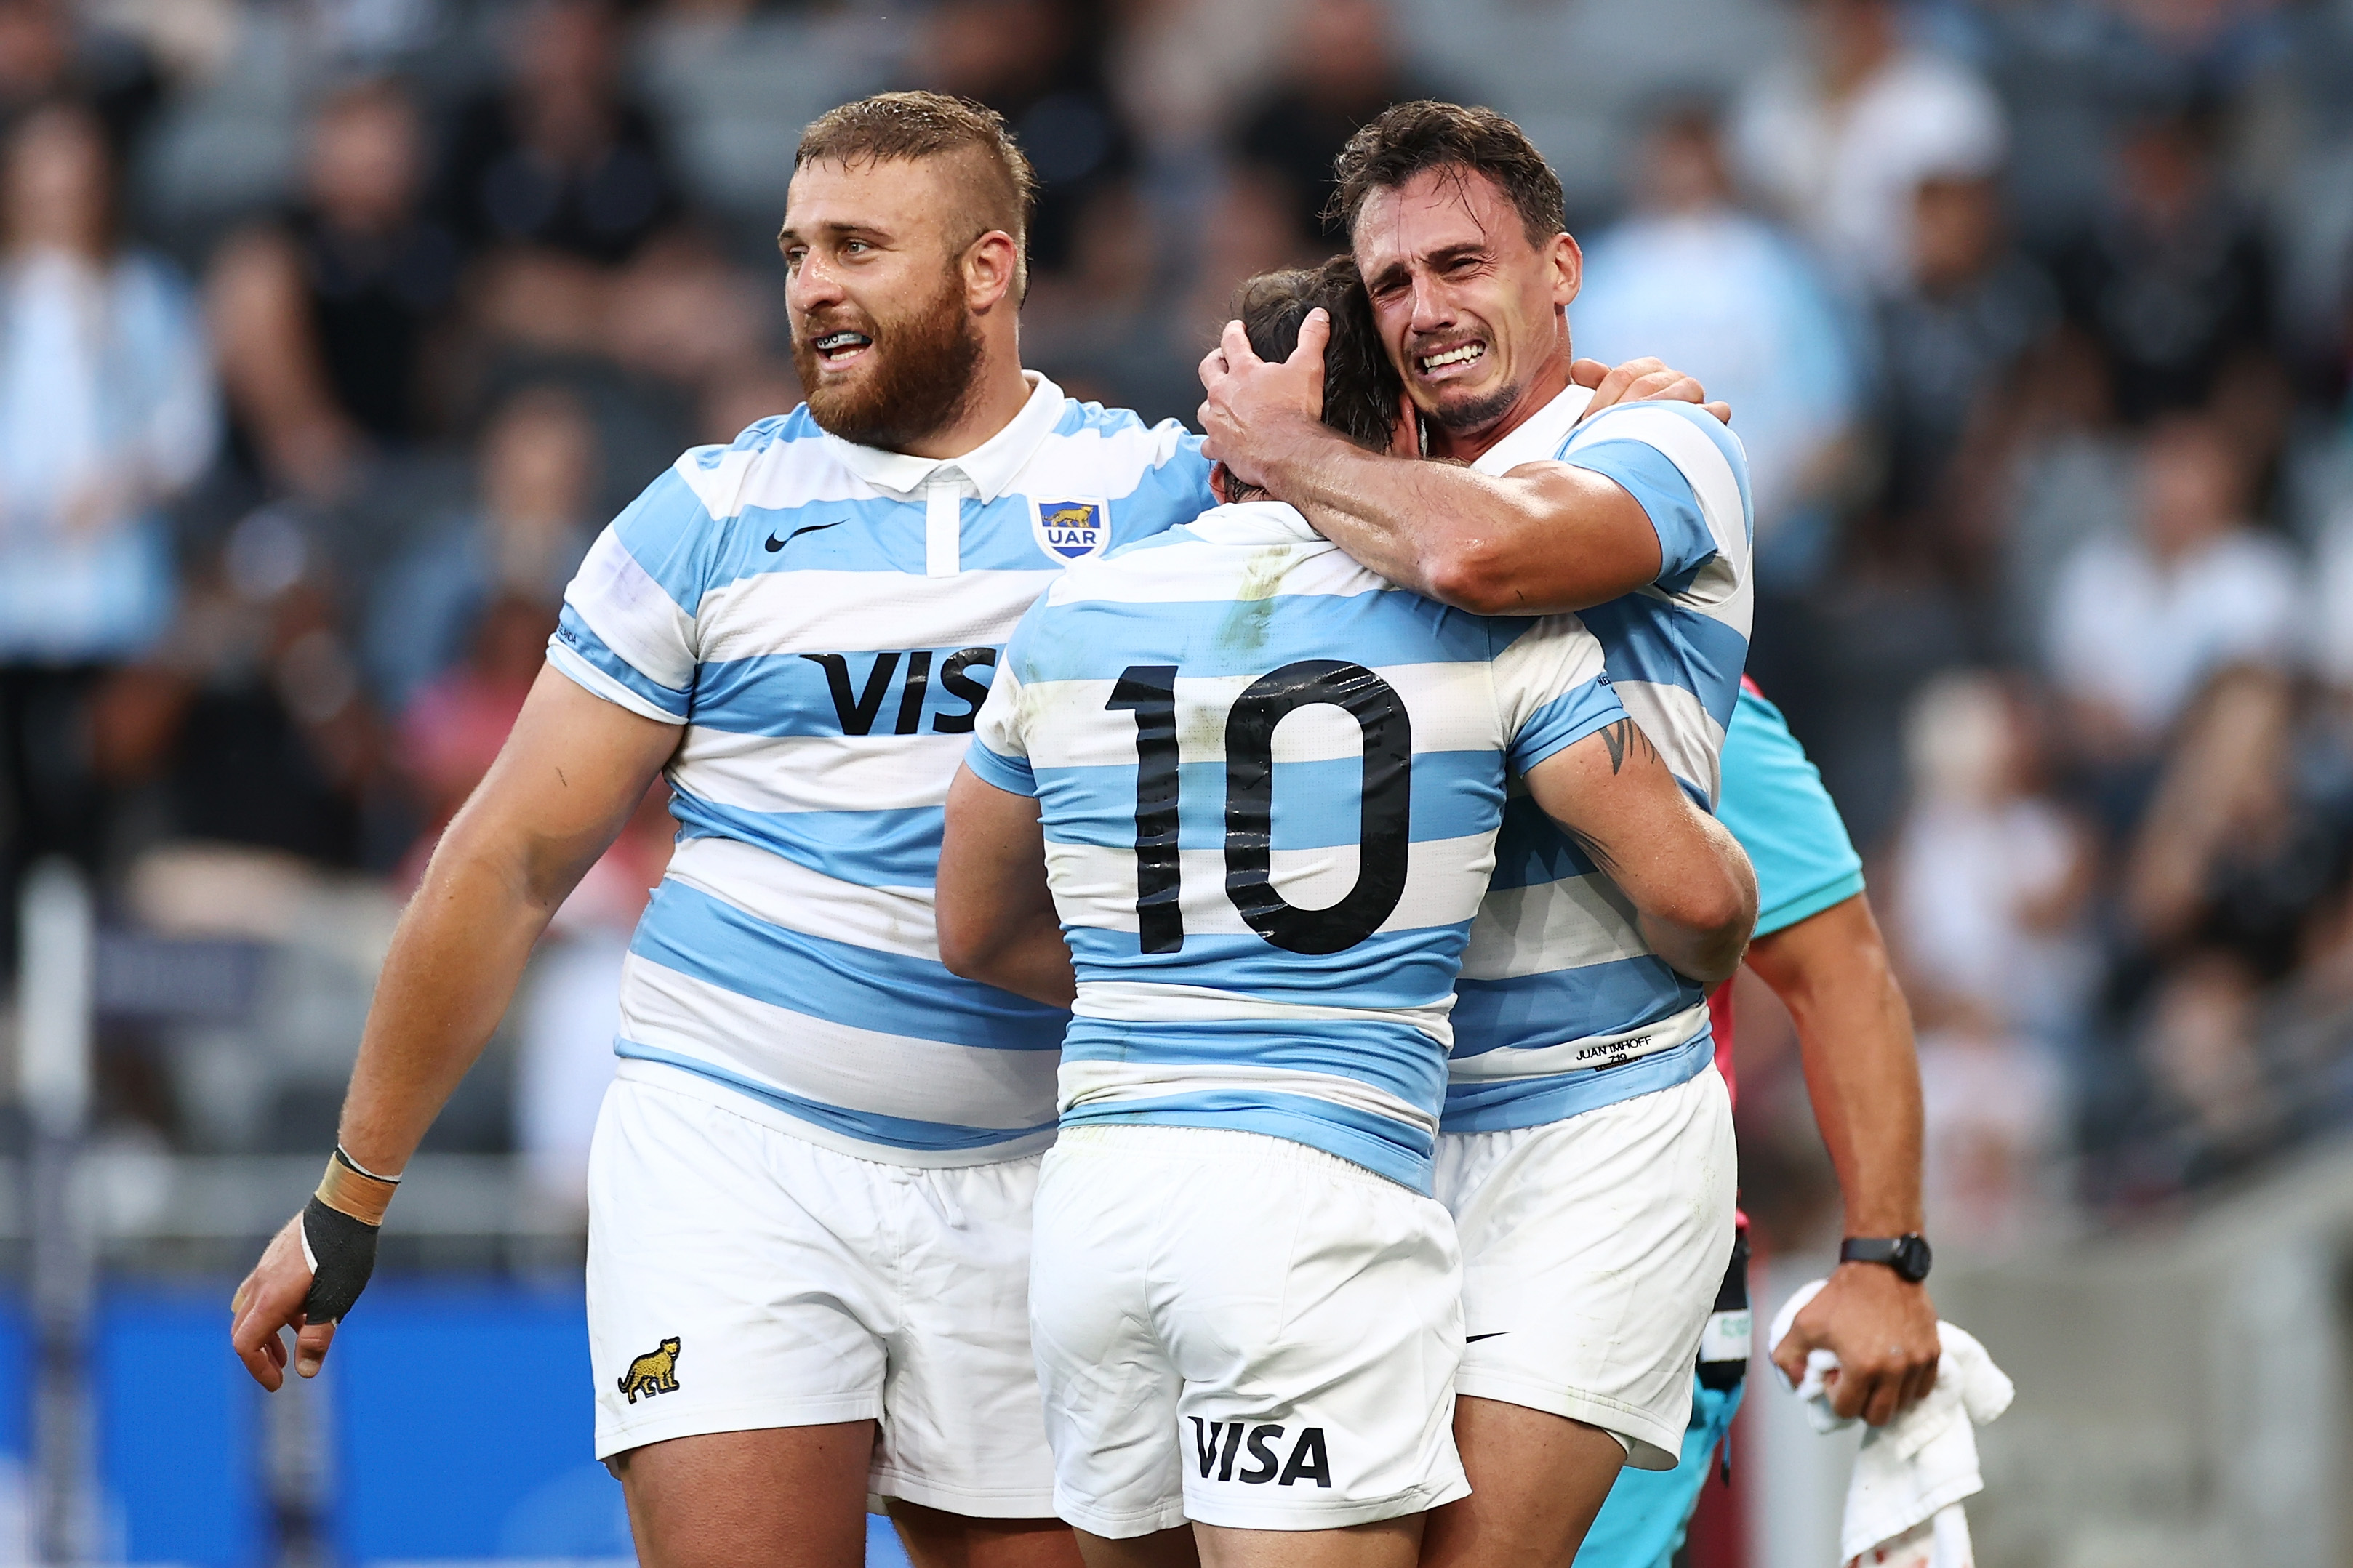 Victory over the All Blacks was an 'emotional' moment for Argentina, says Hugo Porta